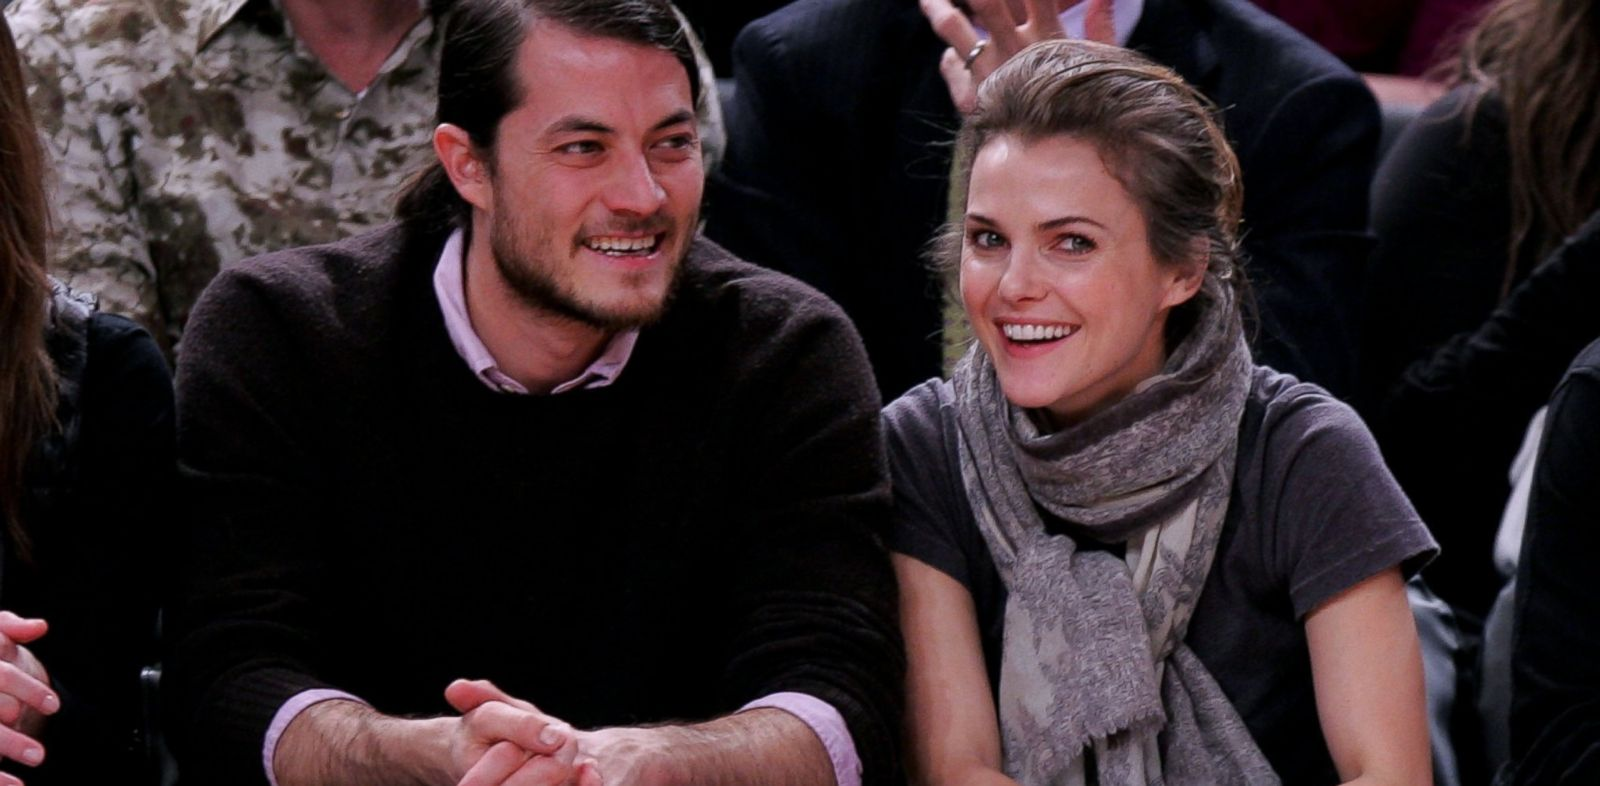 PHOTO: Keri Russell and Shane Dreary attend Dallas Mavericks vs New York Knicks game at Madison Square Garden, Dec. 10, 2007 in New York.